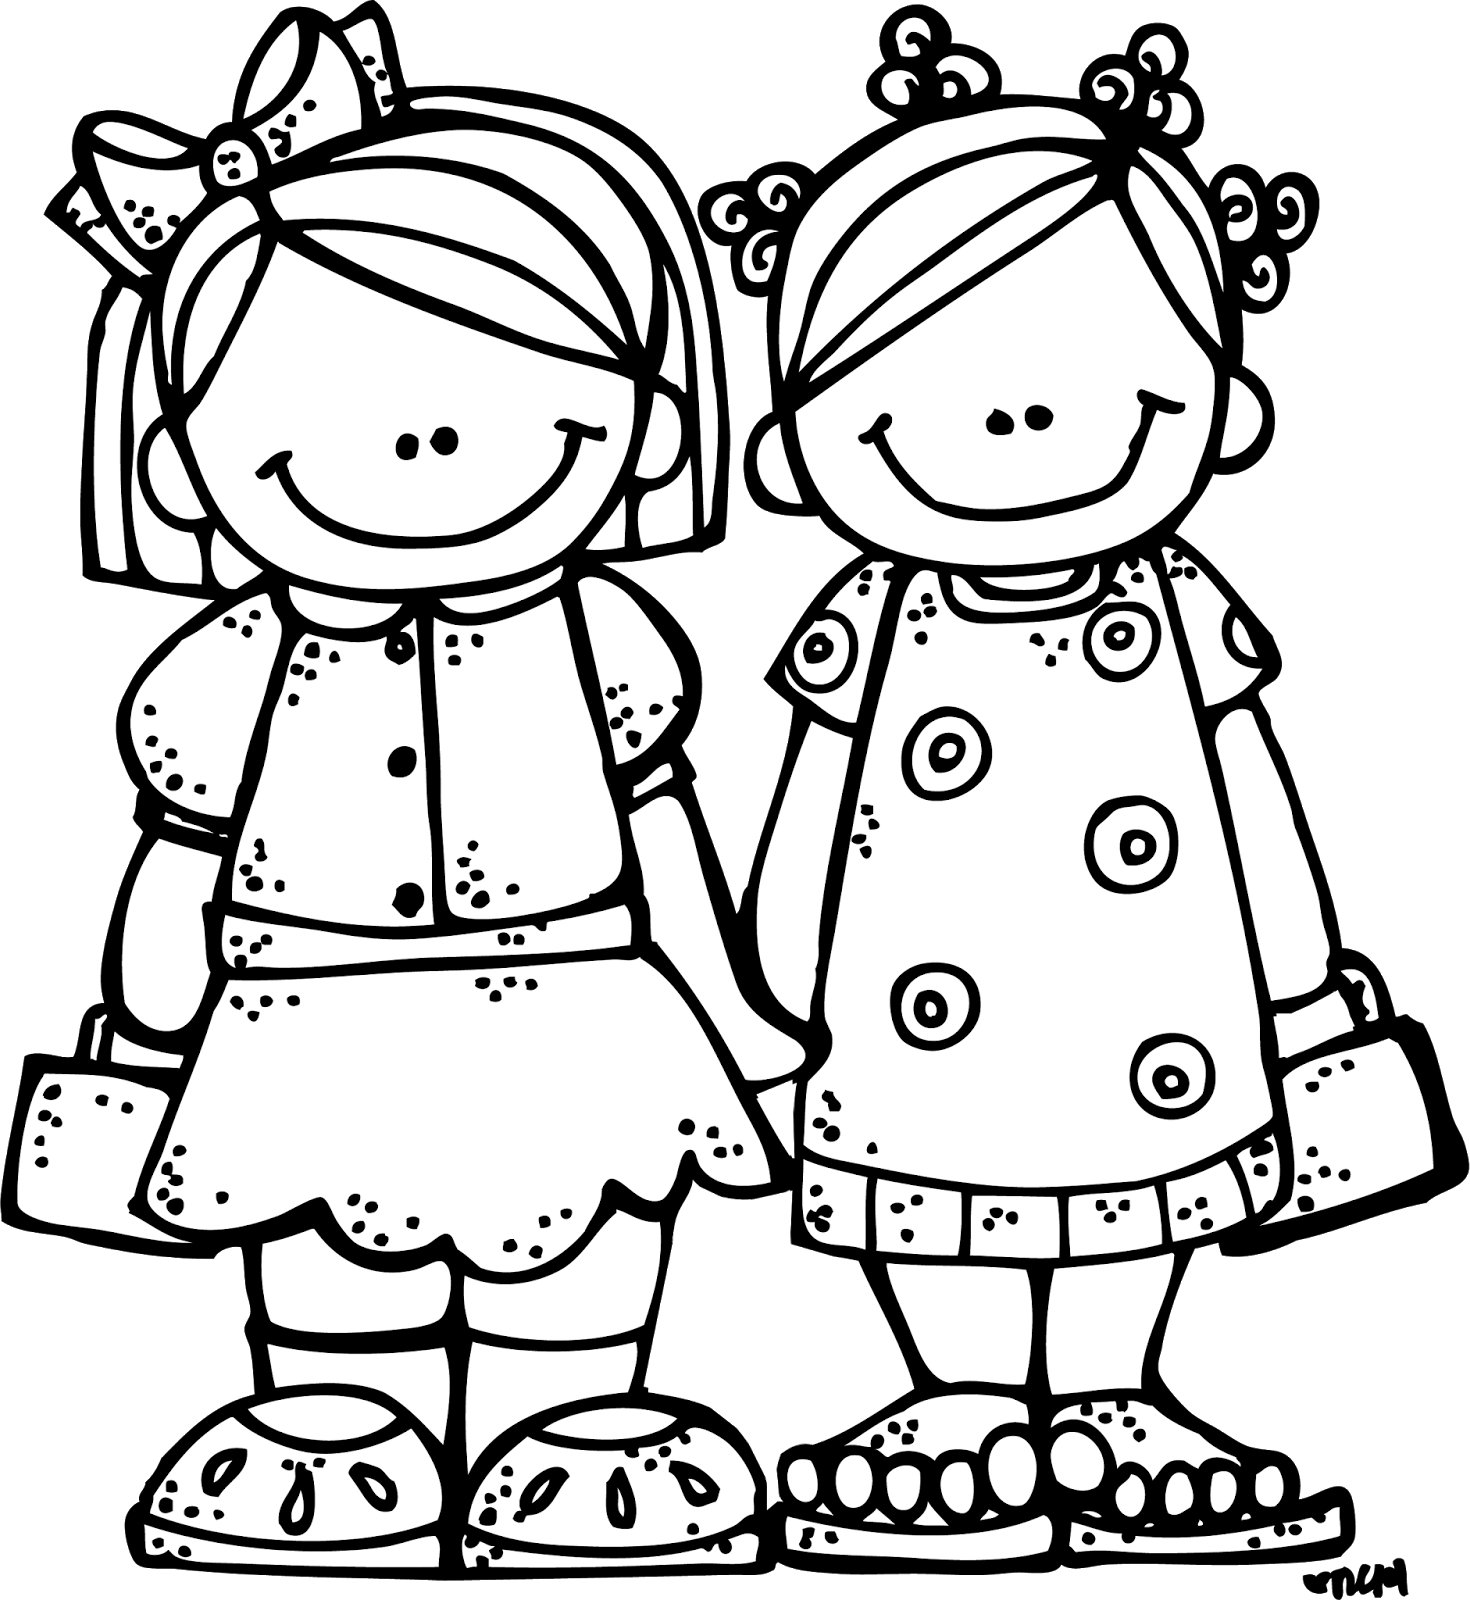 Free black and white school clipart picture royalty free stock 28+ Collection of Little Sister Clipart Black And White | High ... picture royalty free stock